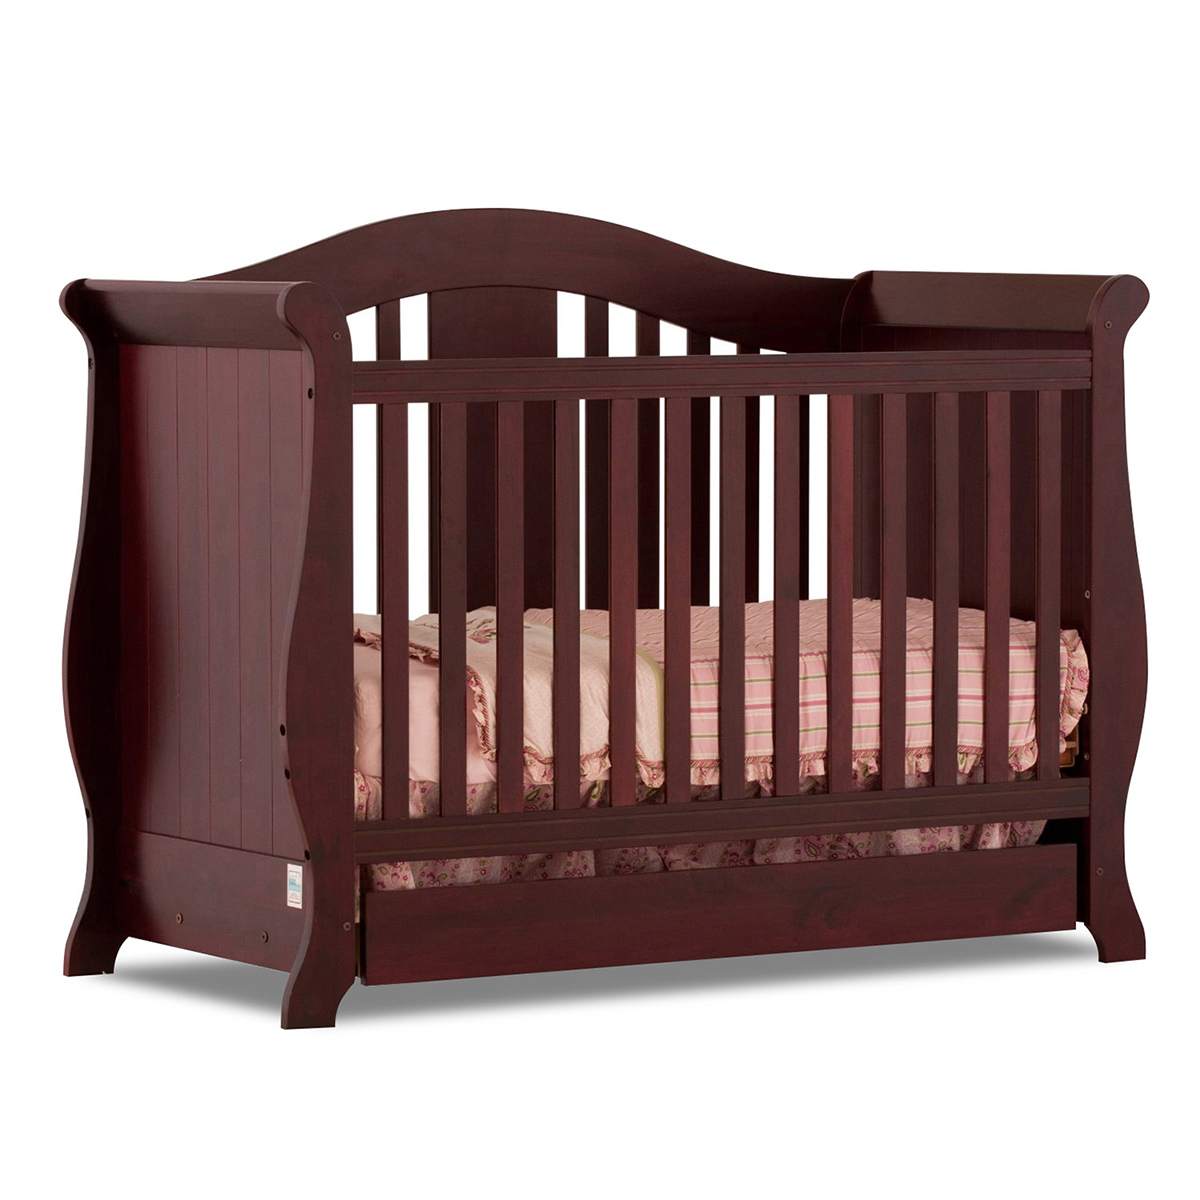 modern original simplybabyfurniture